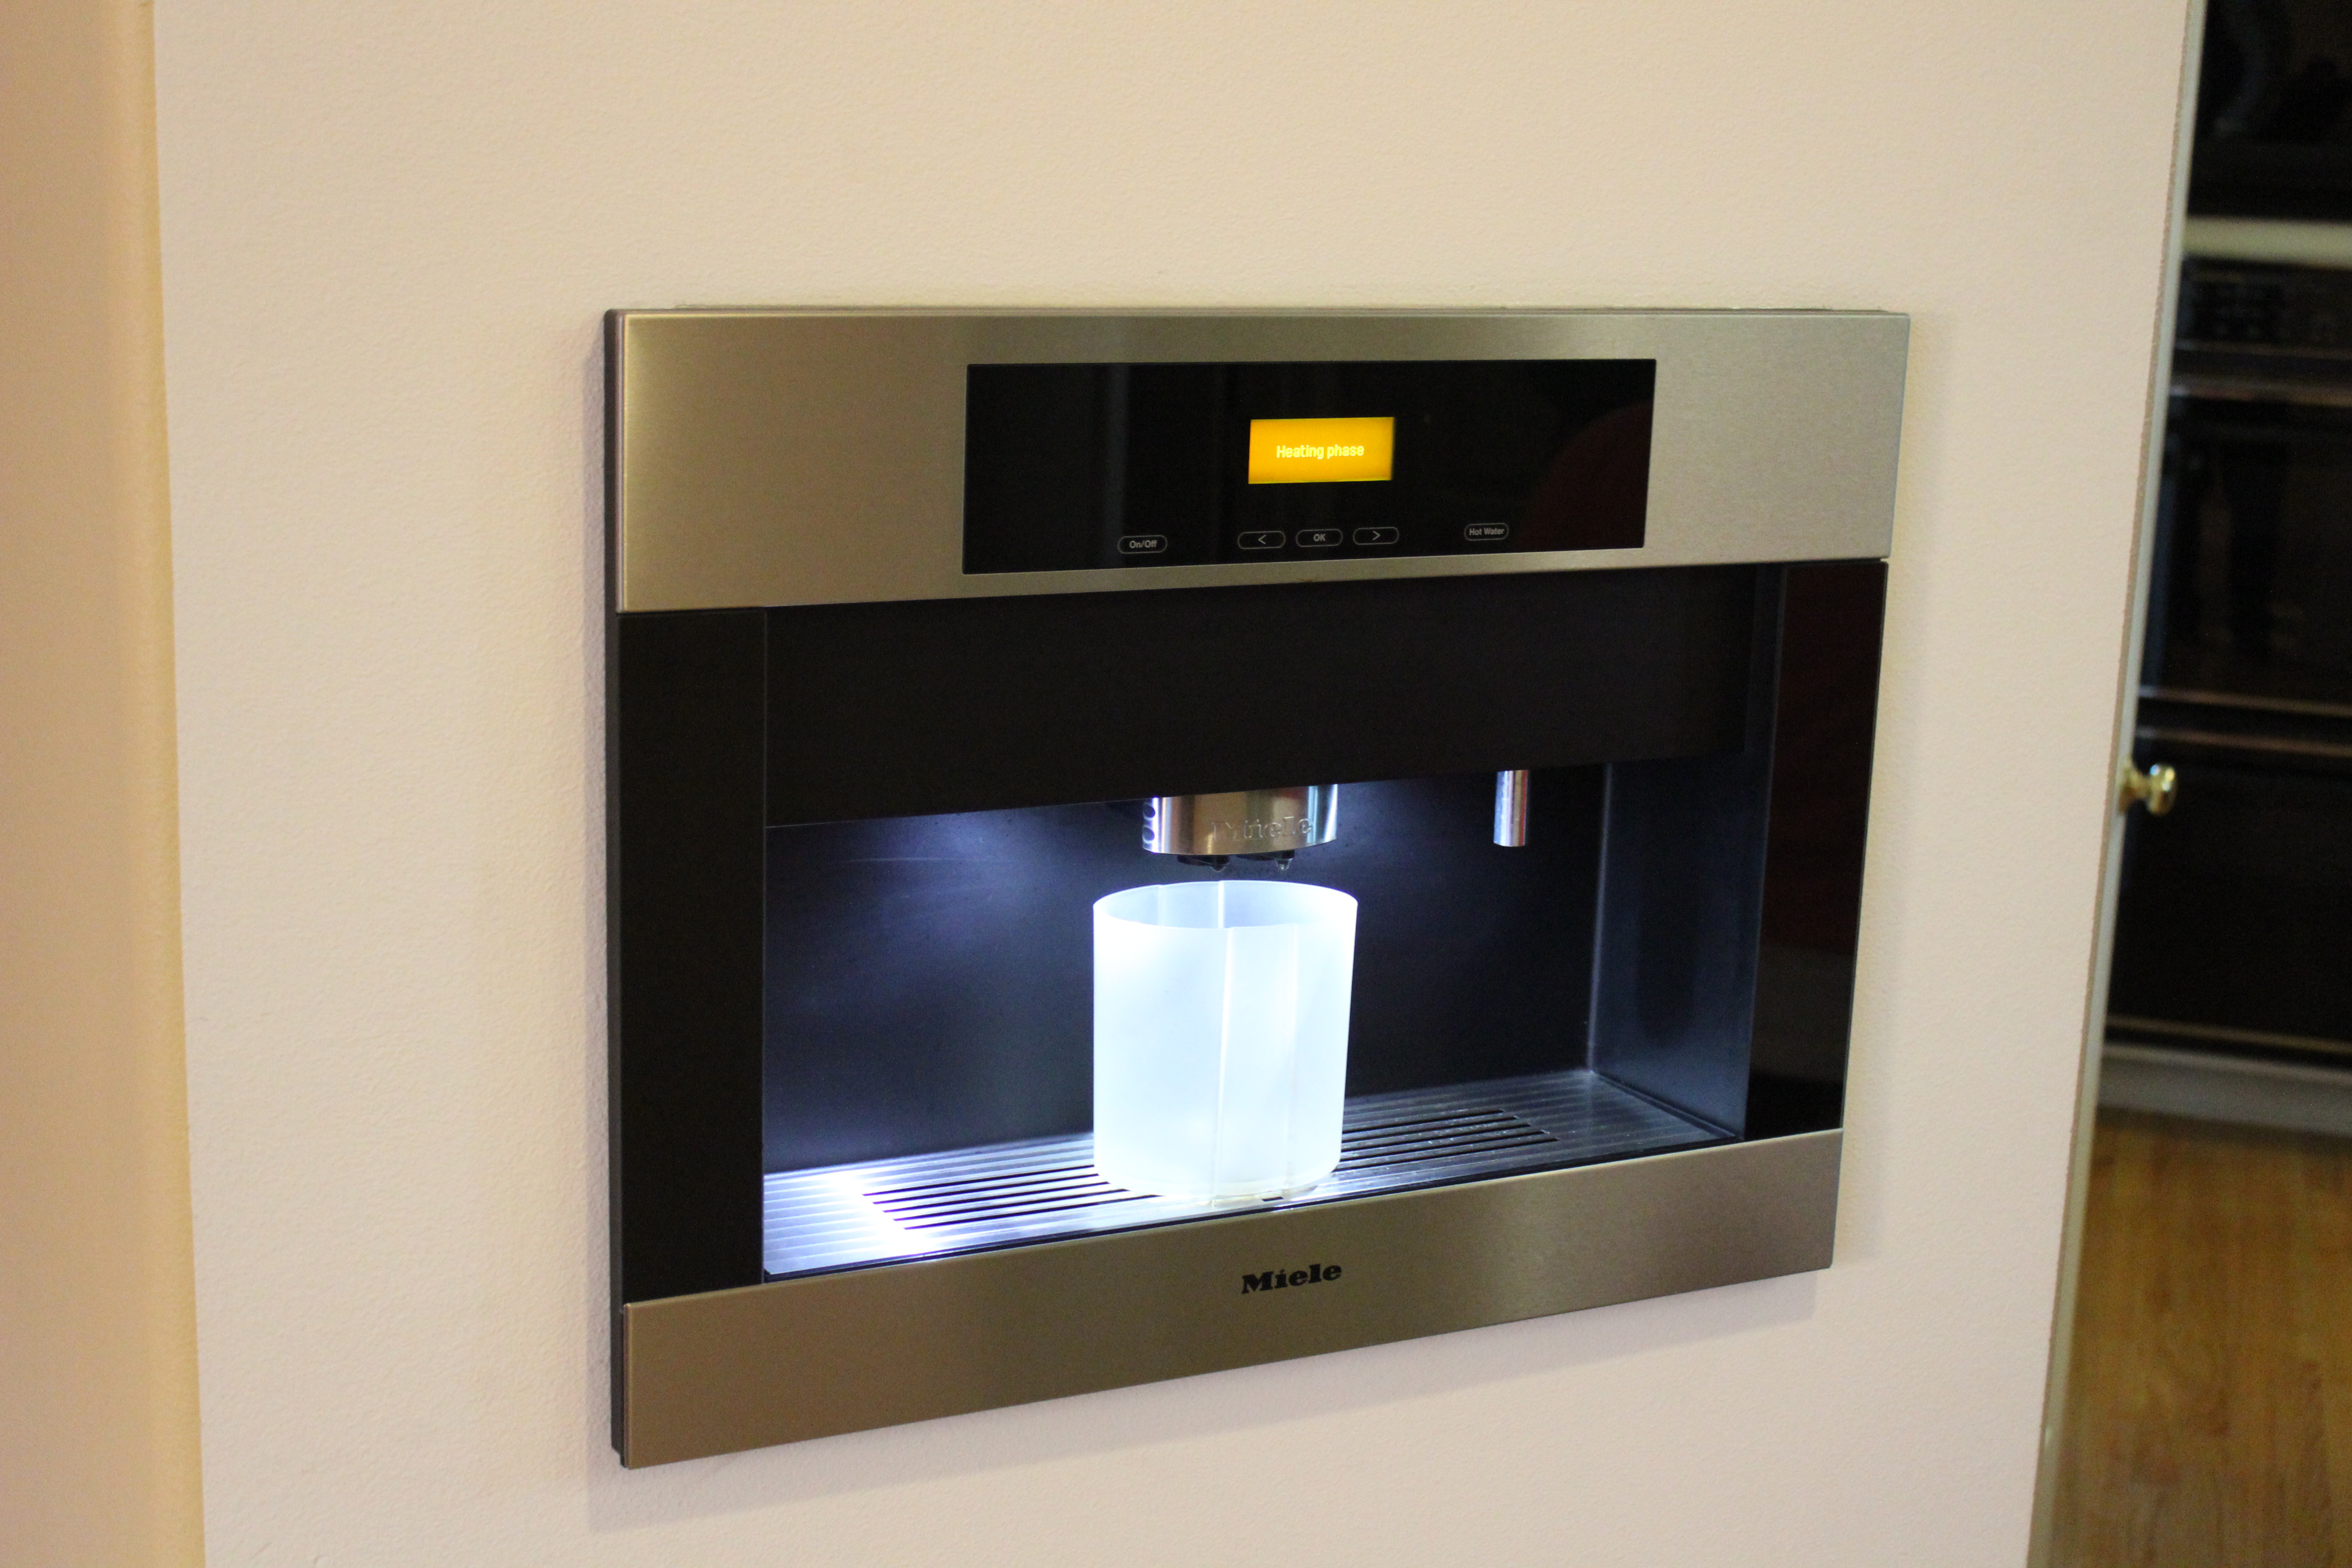 hans miele krug plumbing in coffee system pureline appliances cts built plumbed product maker